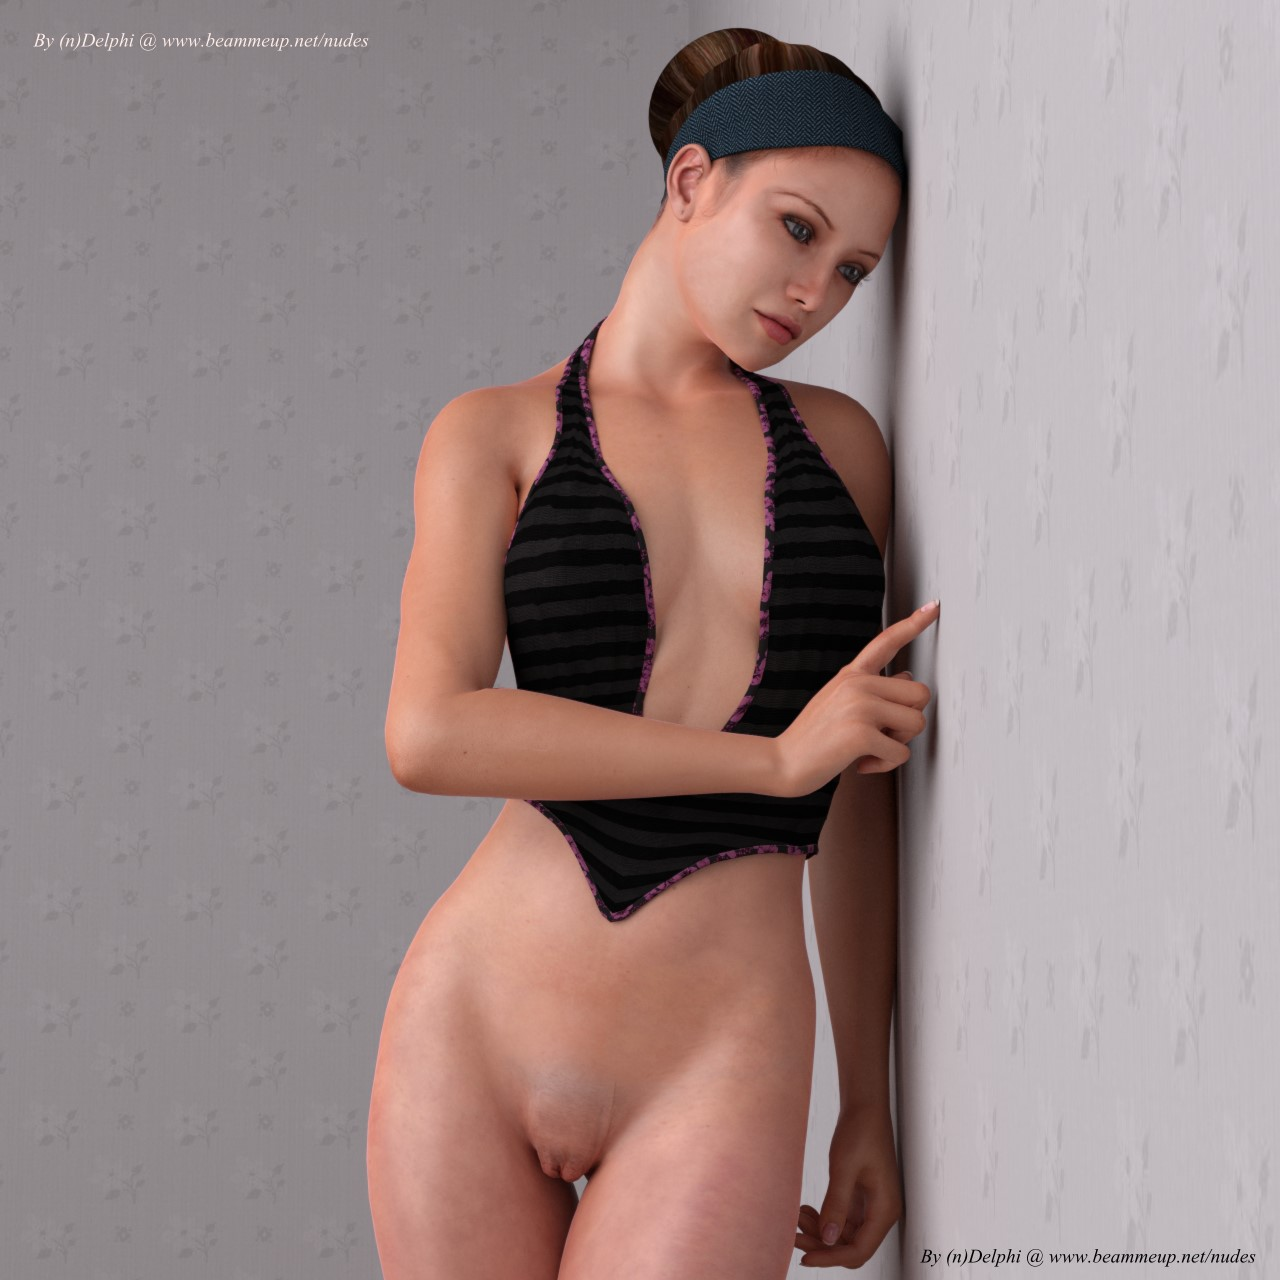 Daz3d girl nude porncraft tube